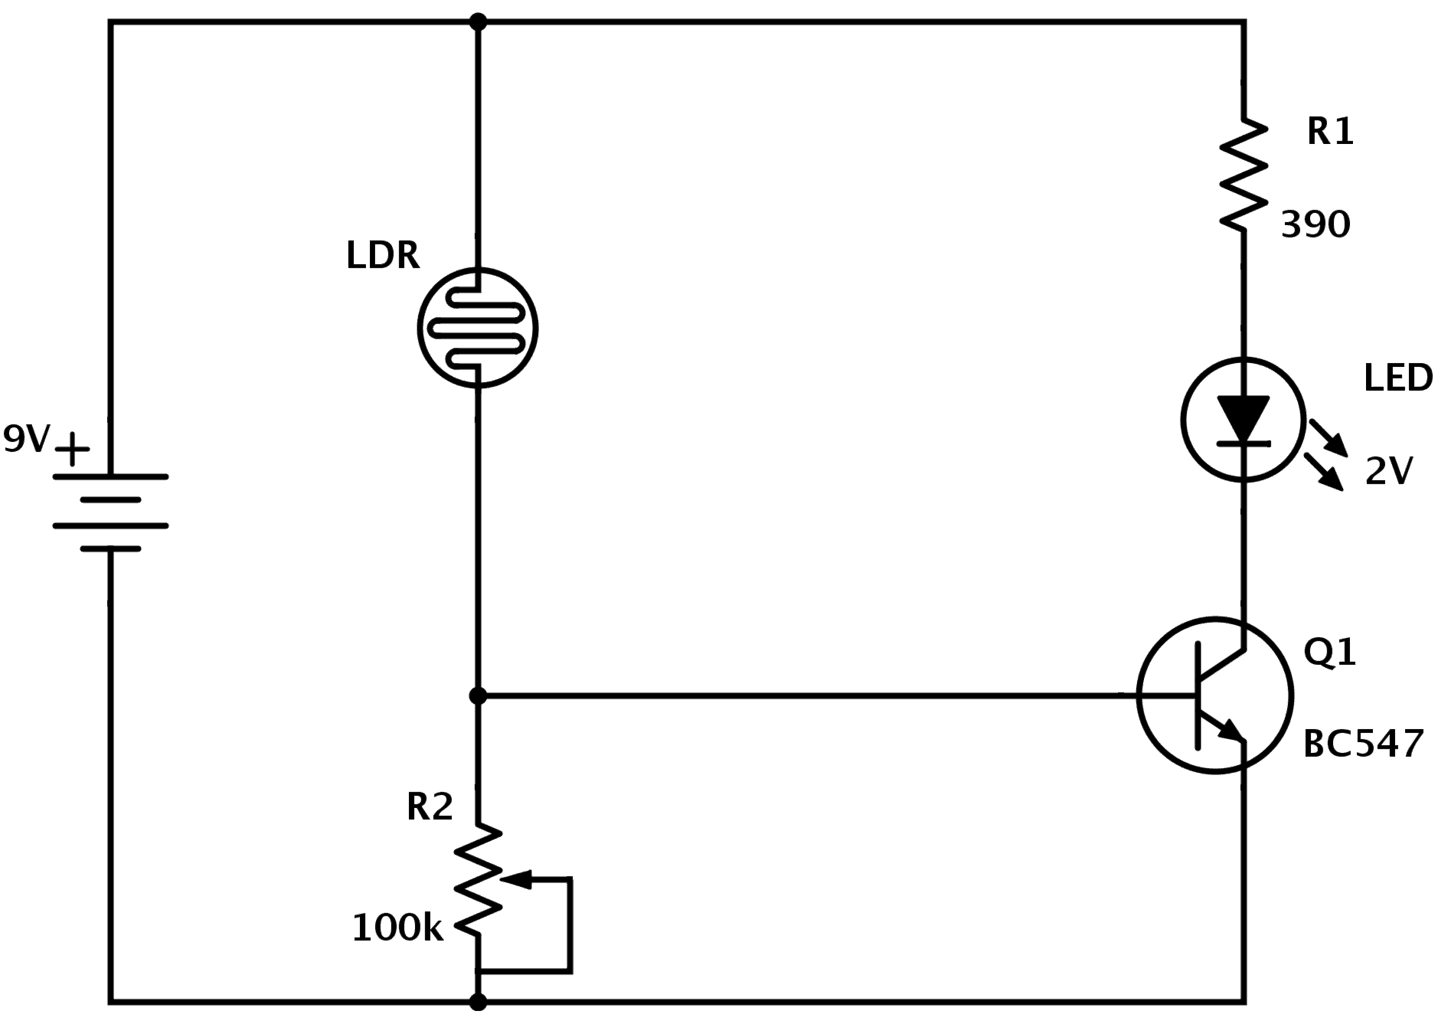 Ldr Circuit Diagram Build Electronic Circuits 2 Level Logic